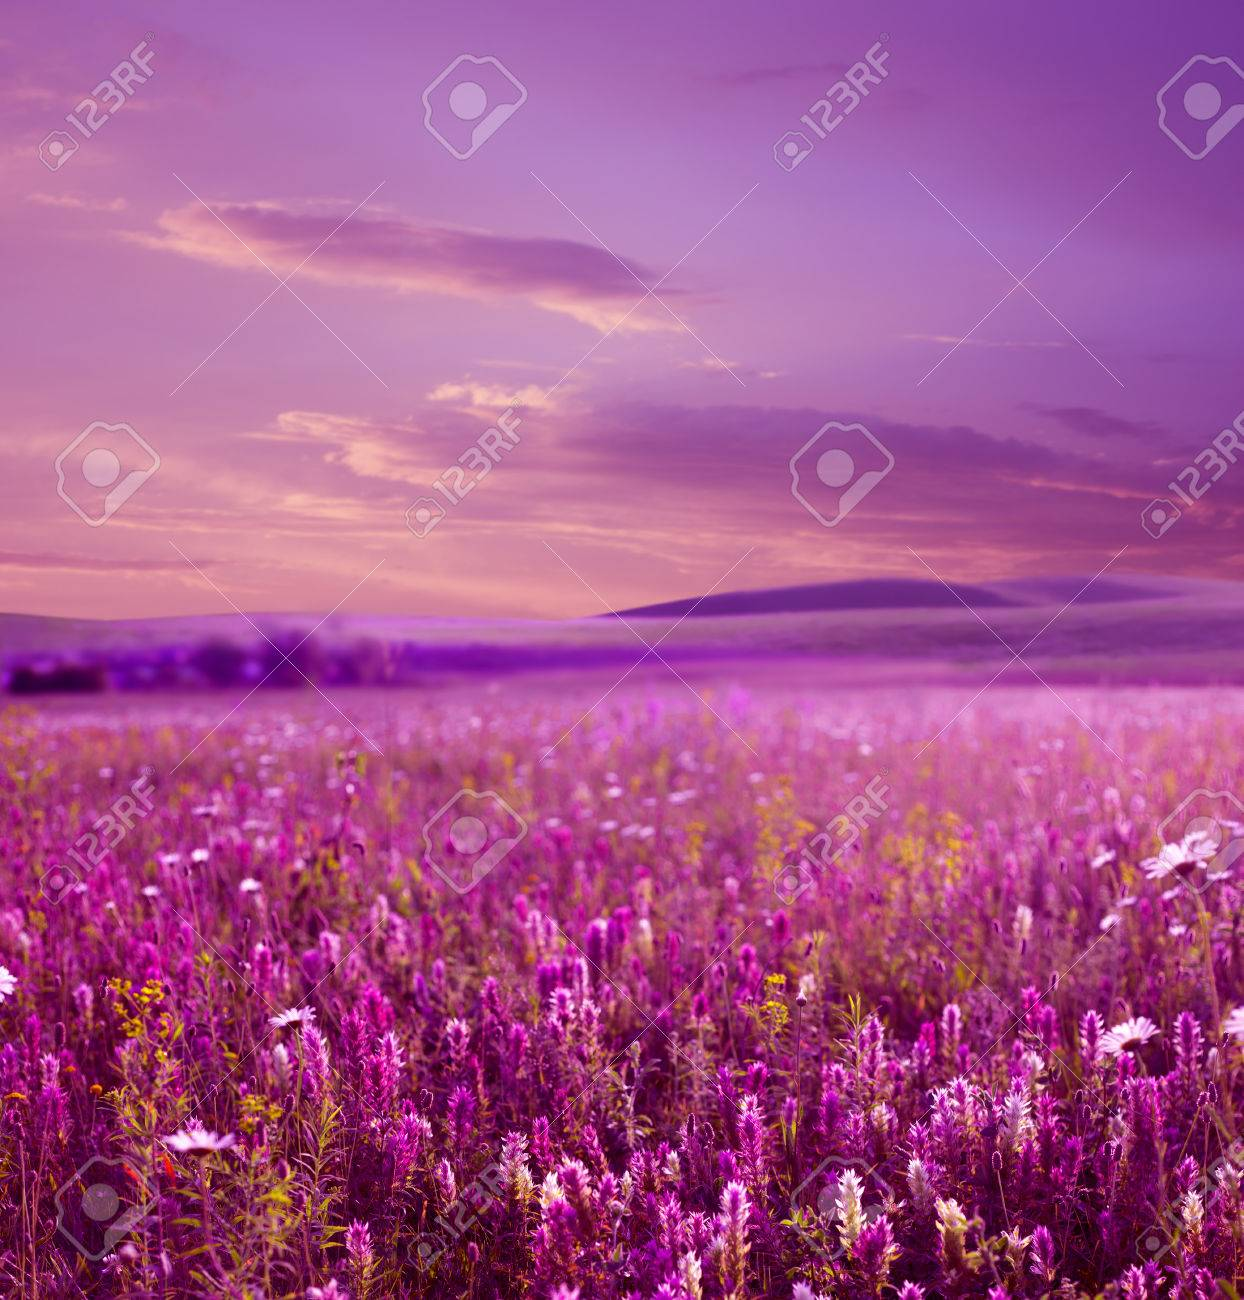 Flower field sunset Animated Pink Sunset Is In The Flower Field Stock Photo 32053254 123rfcom Pink Sunset Is In The Flower Field Stock Photo Picture And Royalty